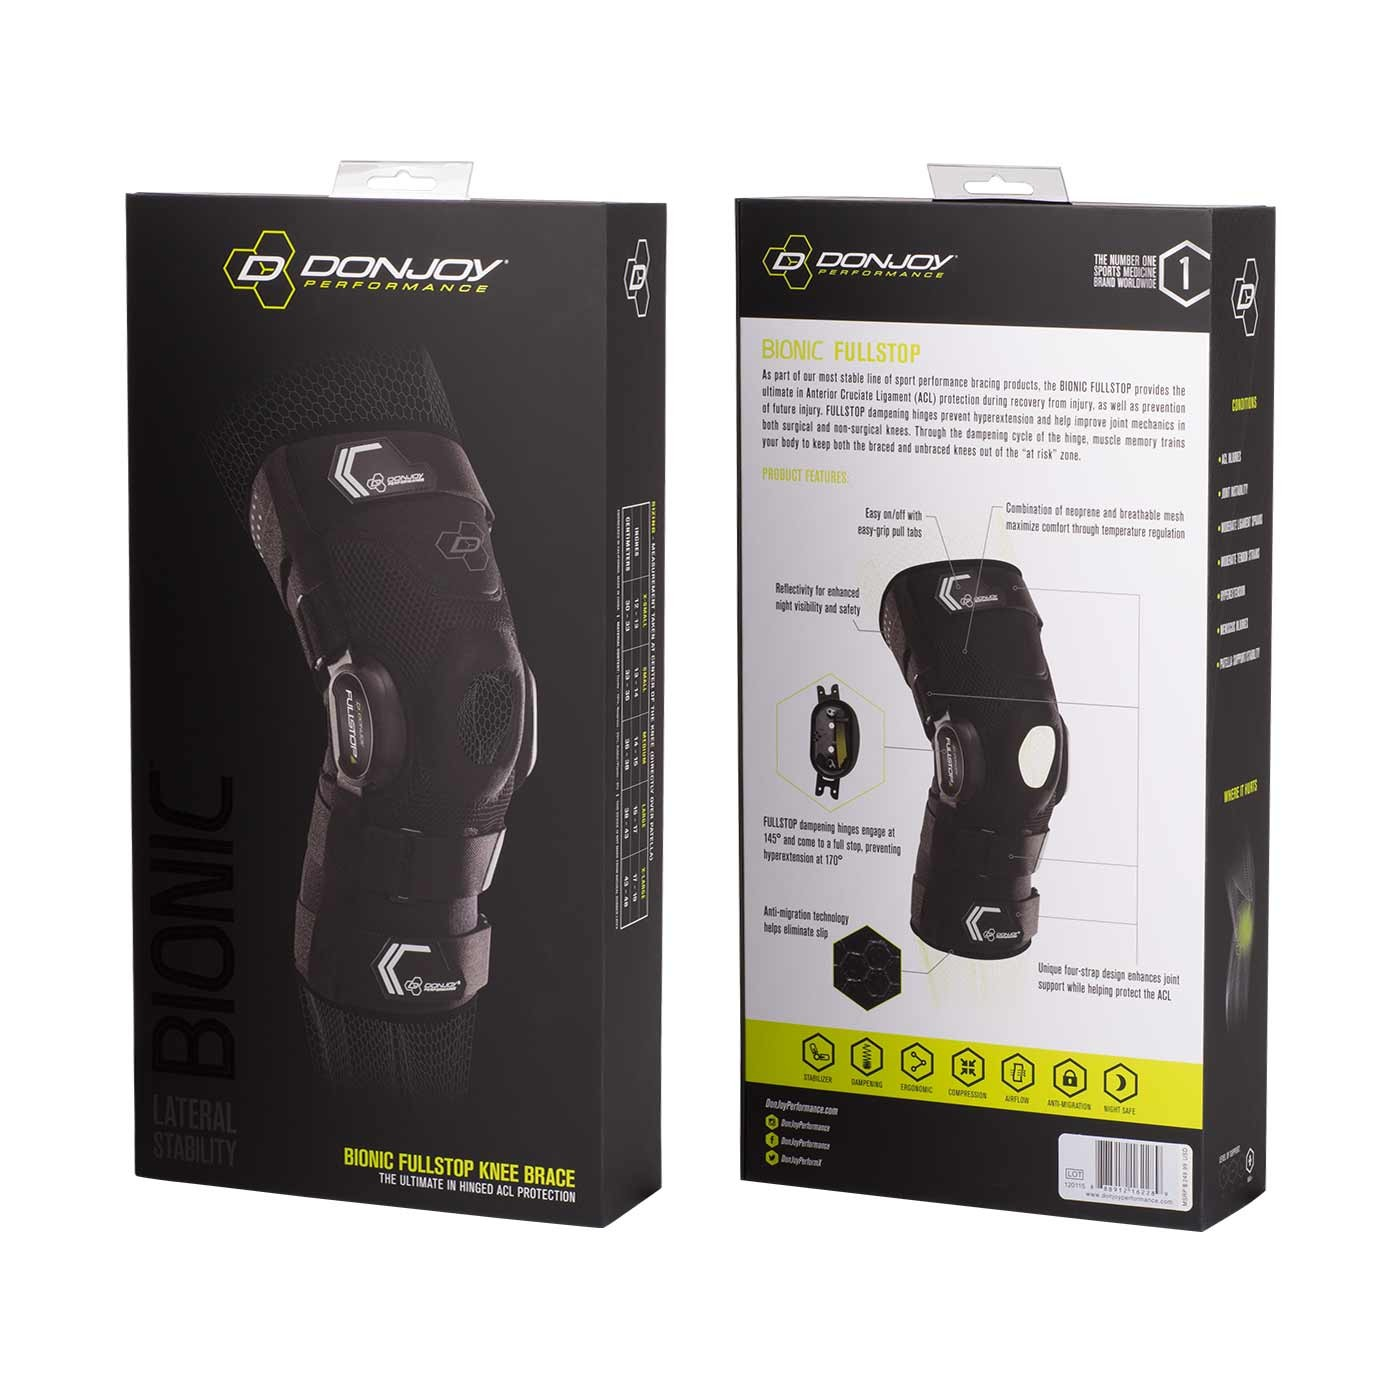 aedc063701 ... DonJoy Performance Retail Packaging; Bionic FullStop Knee Brace; Bionic  FullStop Knee Brace - Hinge. Previous Next